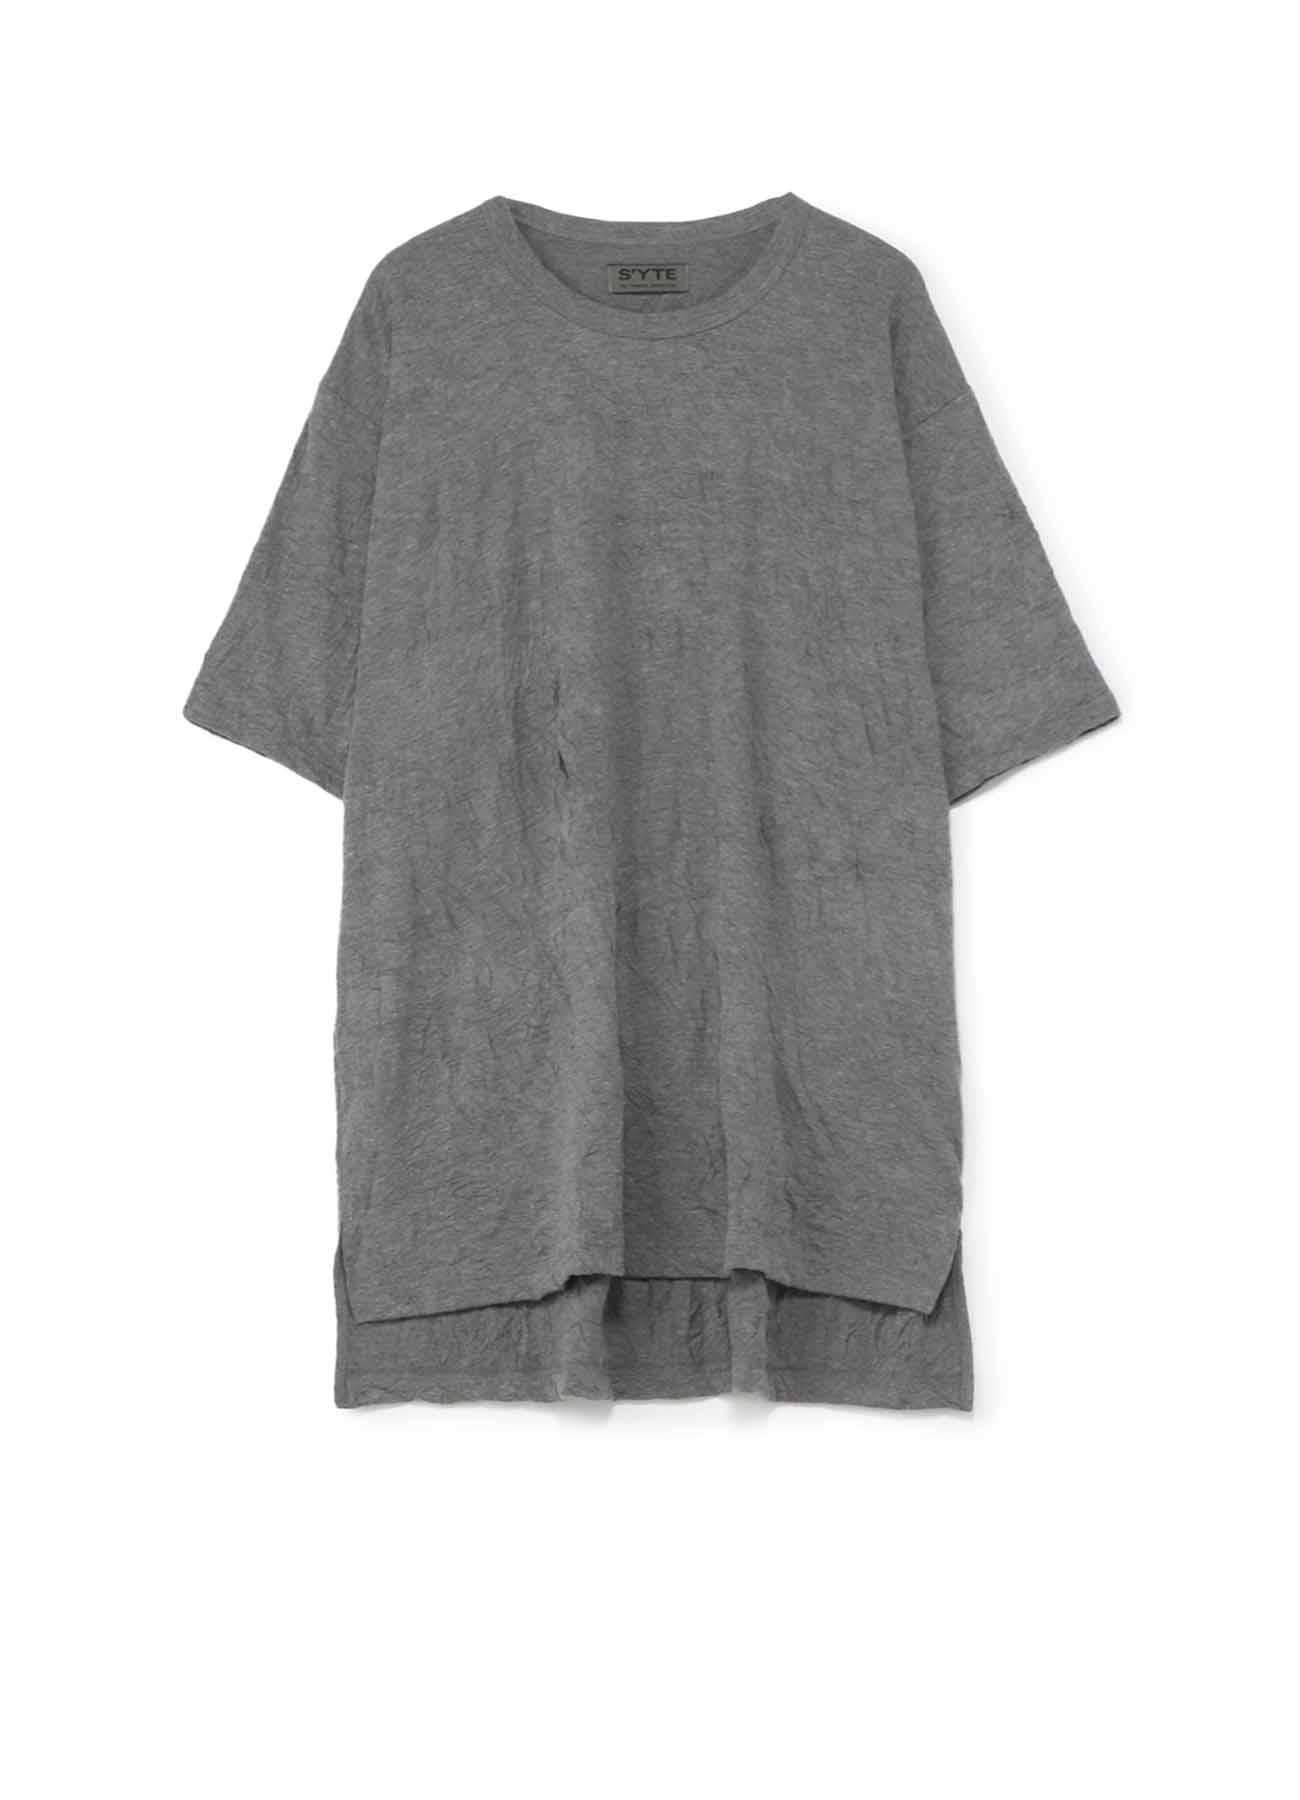 30/-T/C Jersey Catch Washer T-shirt